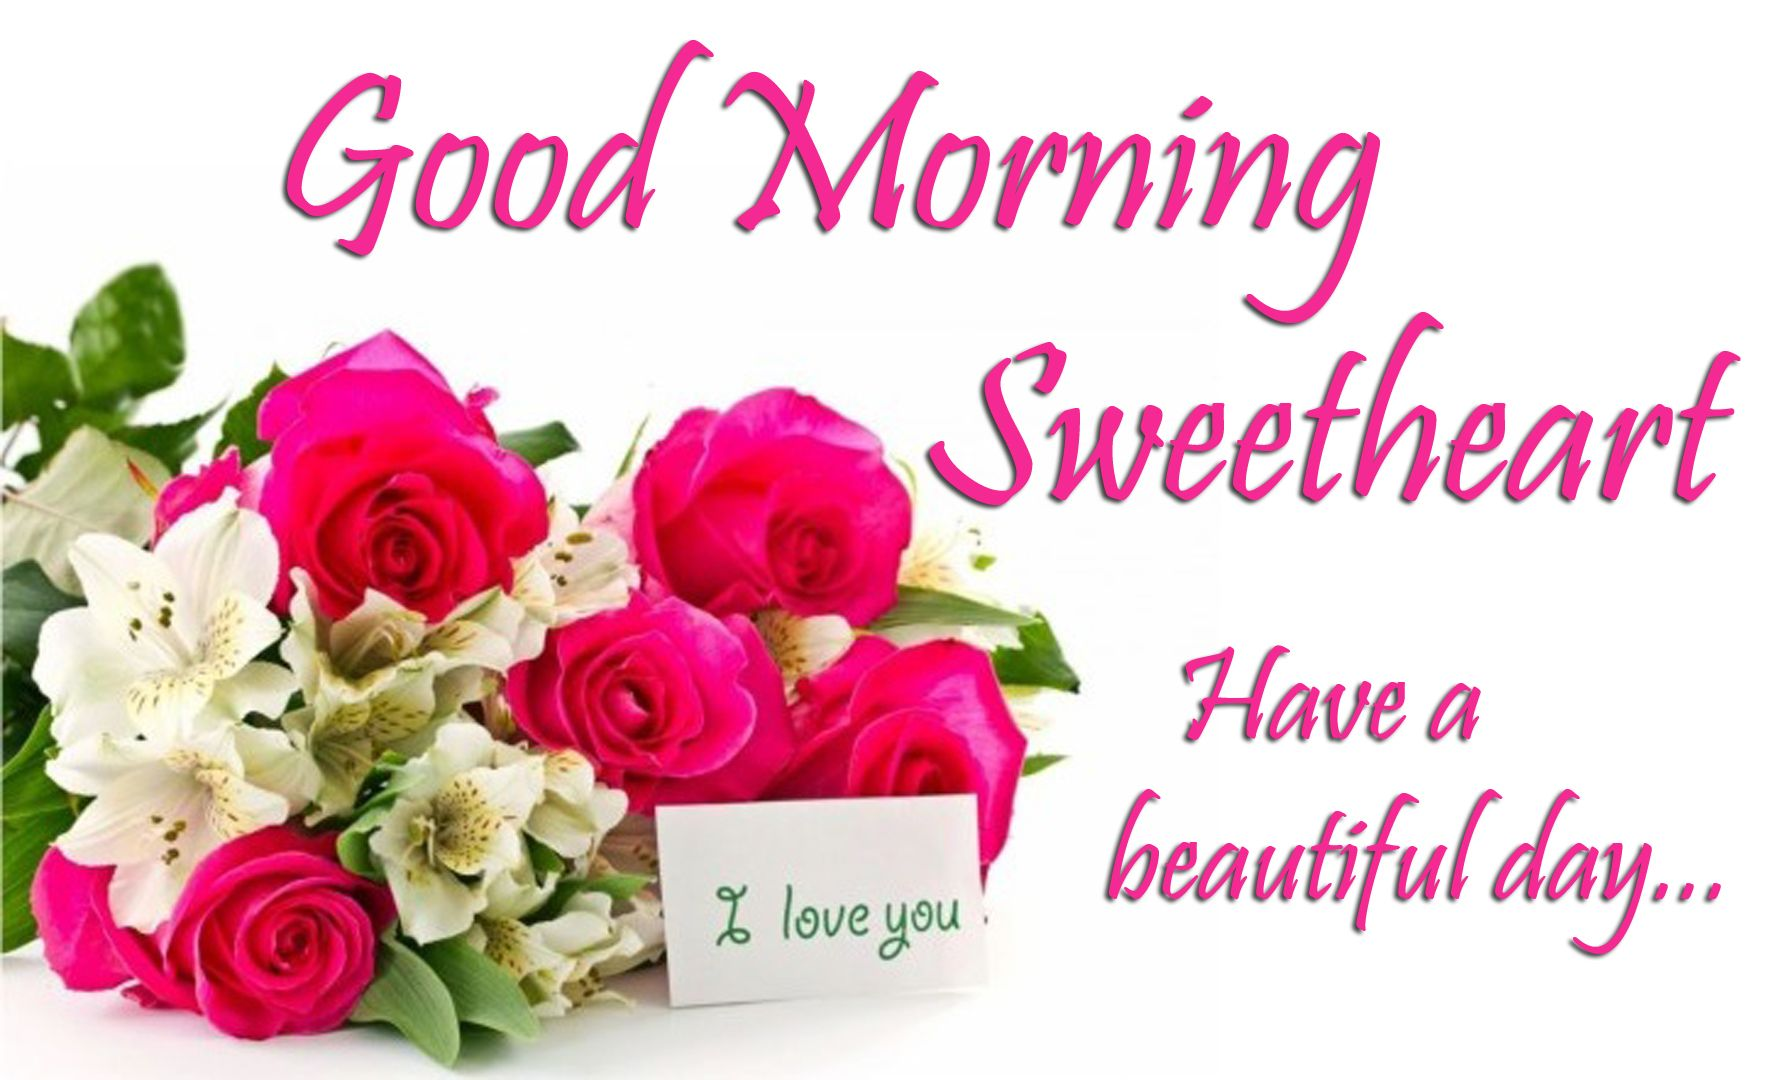 Lovely Good Morning Sweetheart Images Pictures Good Morning Sweetheart Images Morning Sweetheart Good Morning My Sweetheart